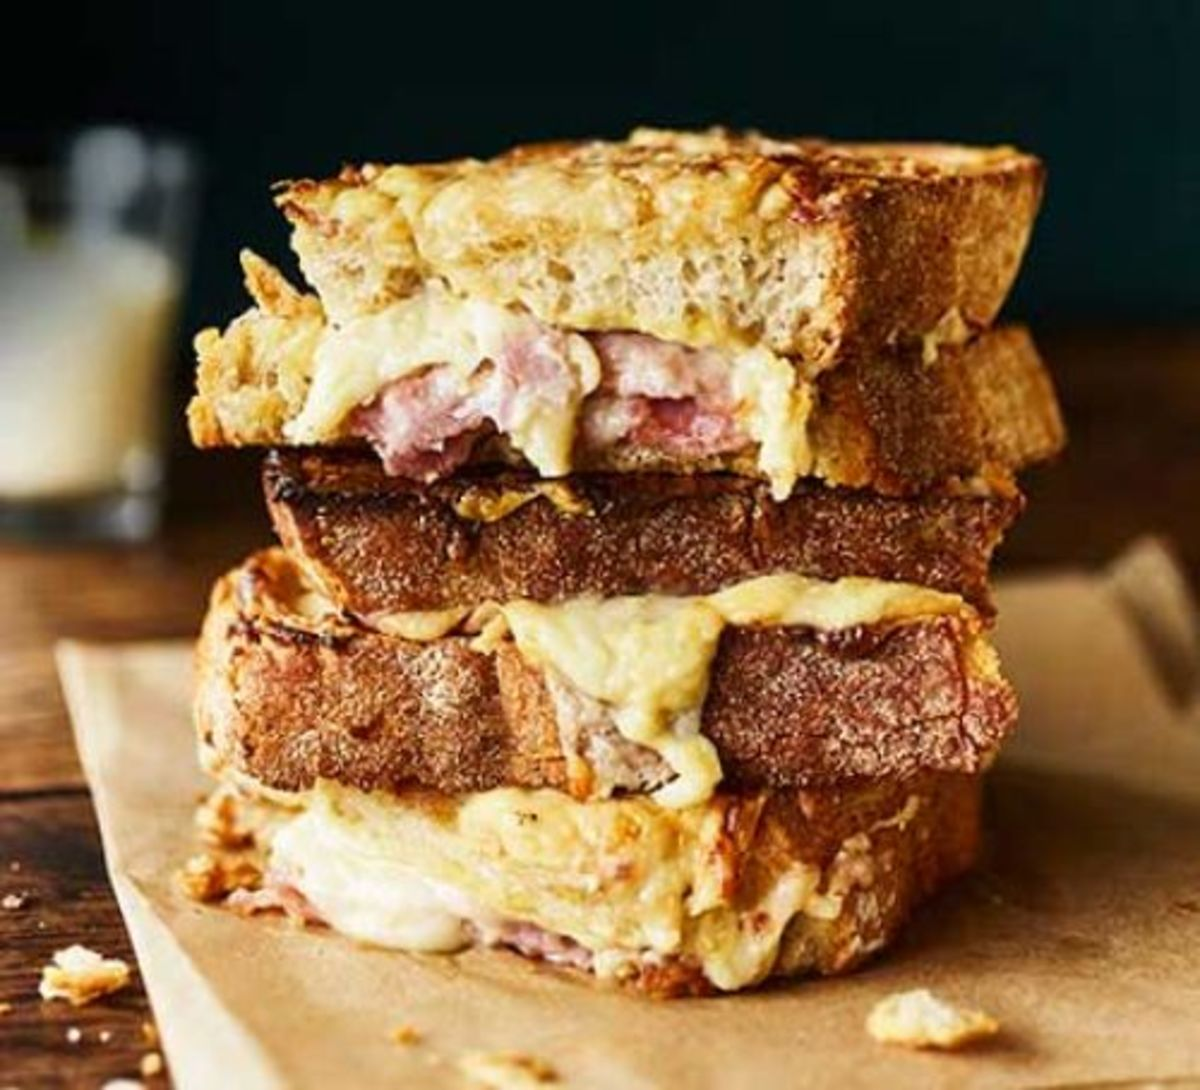 Croque Monsieur (It's More Than a Ham and Cheese Sandwich)